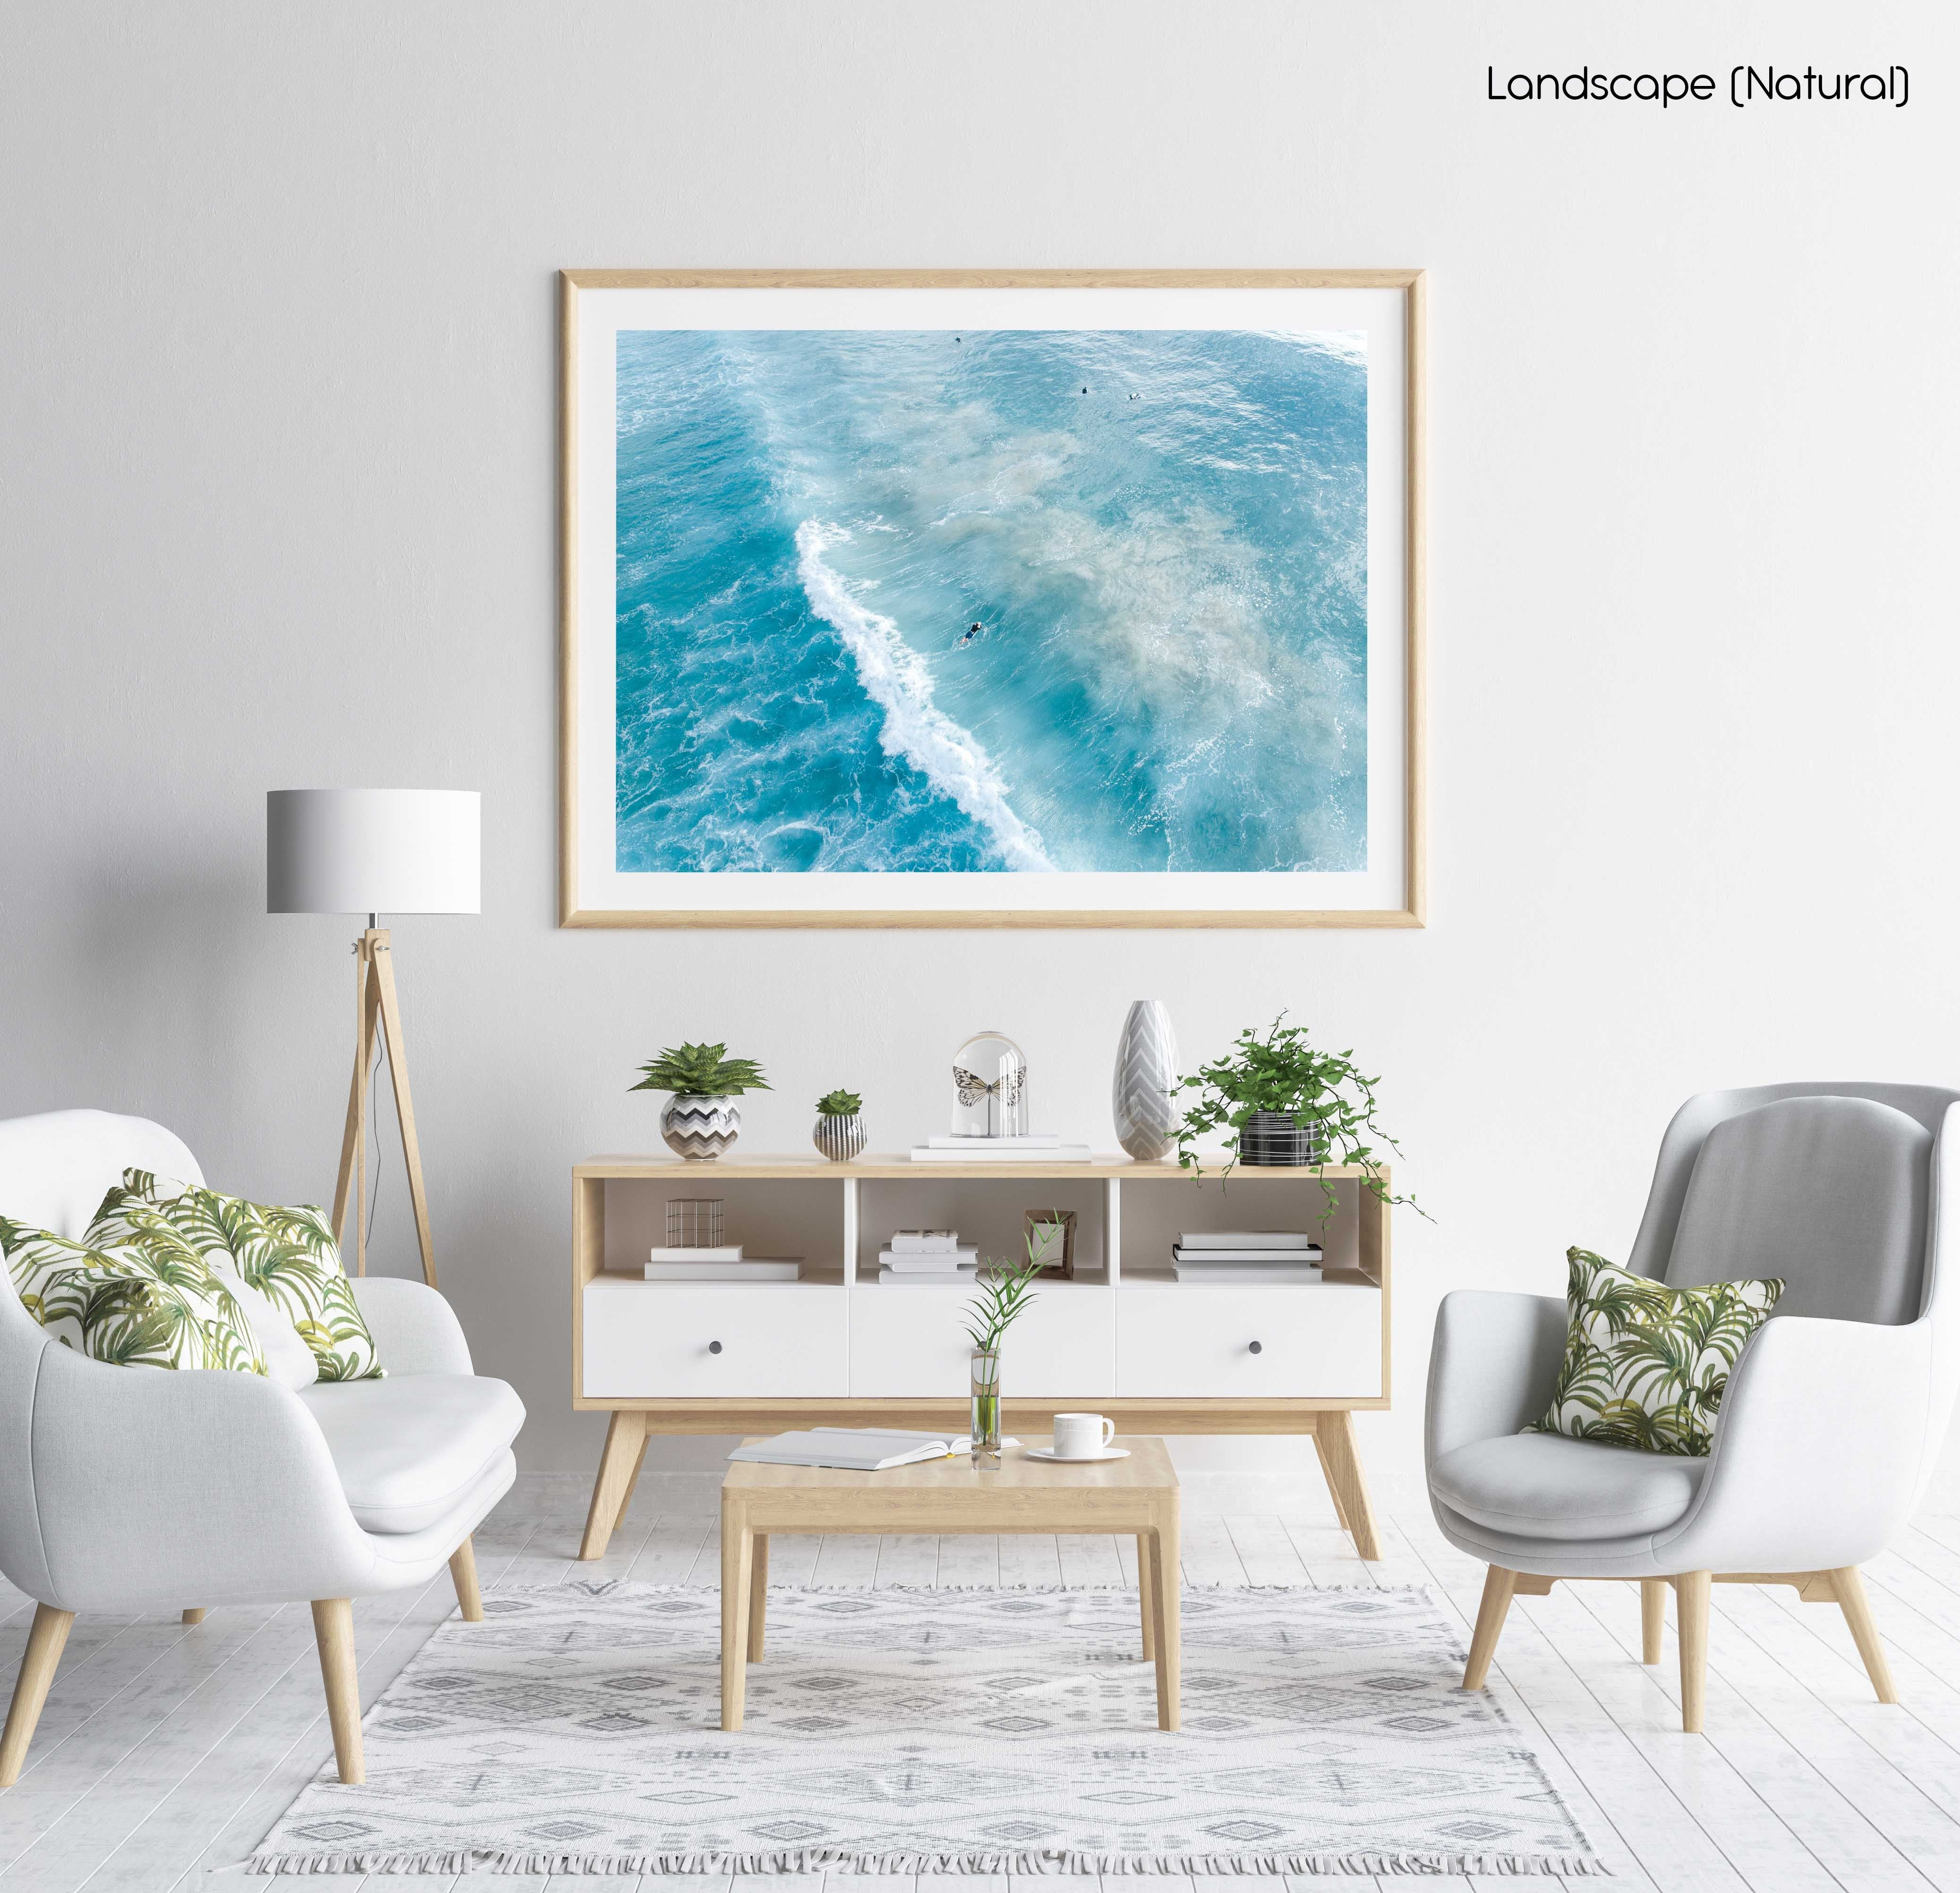 Surfers on whitewash from above in Sydney Australia in a natural fine art frame